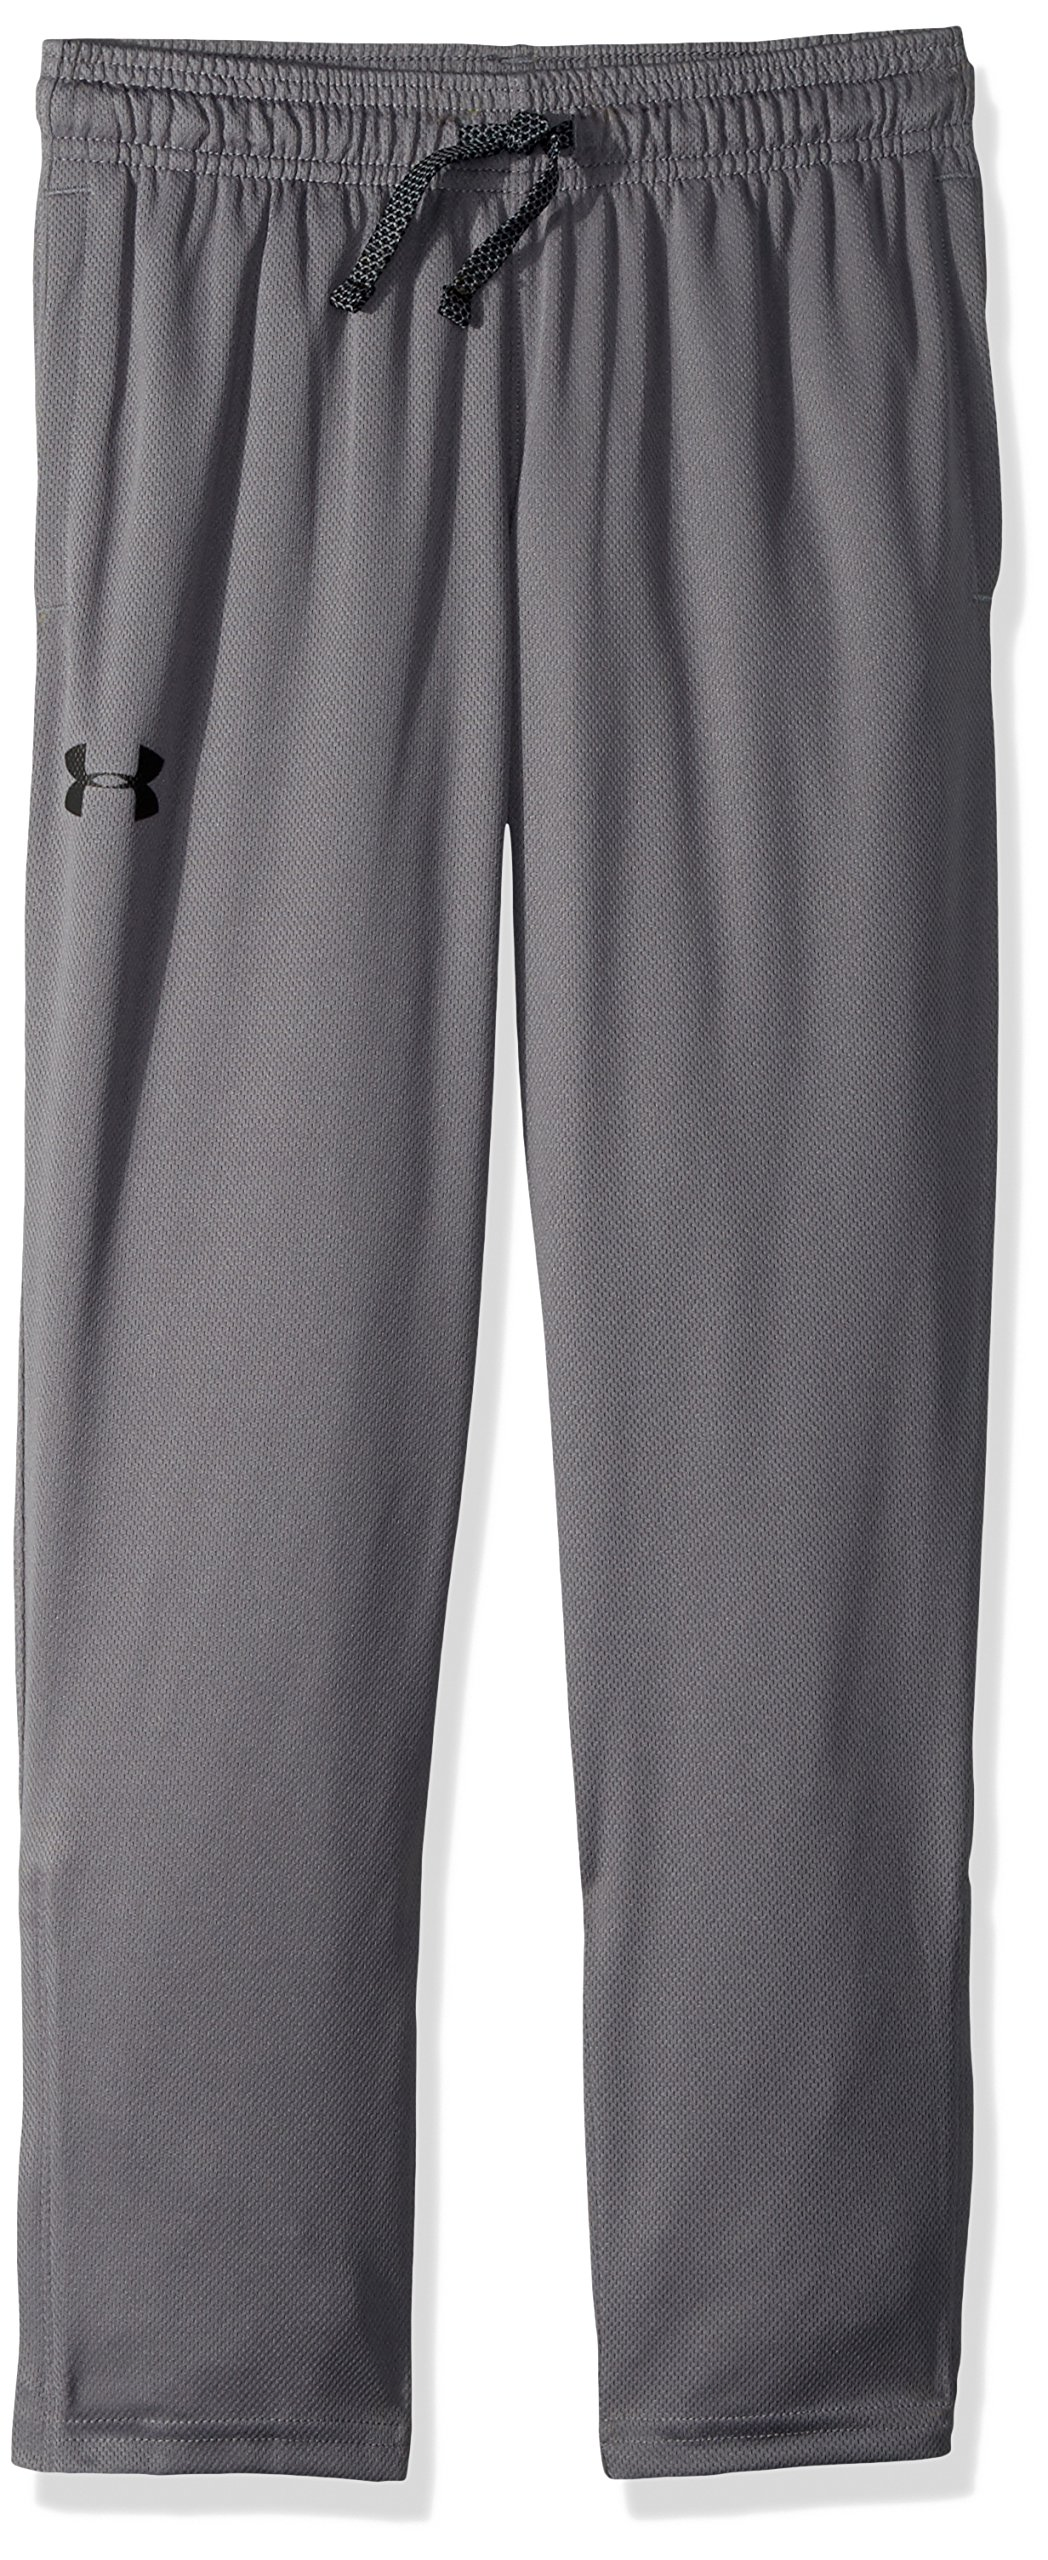 Under Armour Boys' Tech Pants Graphite (041)/Black Youth Small